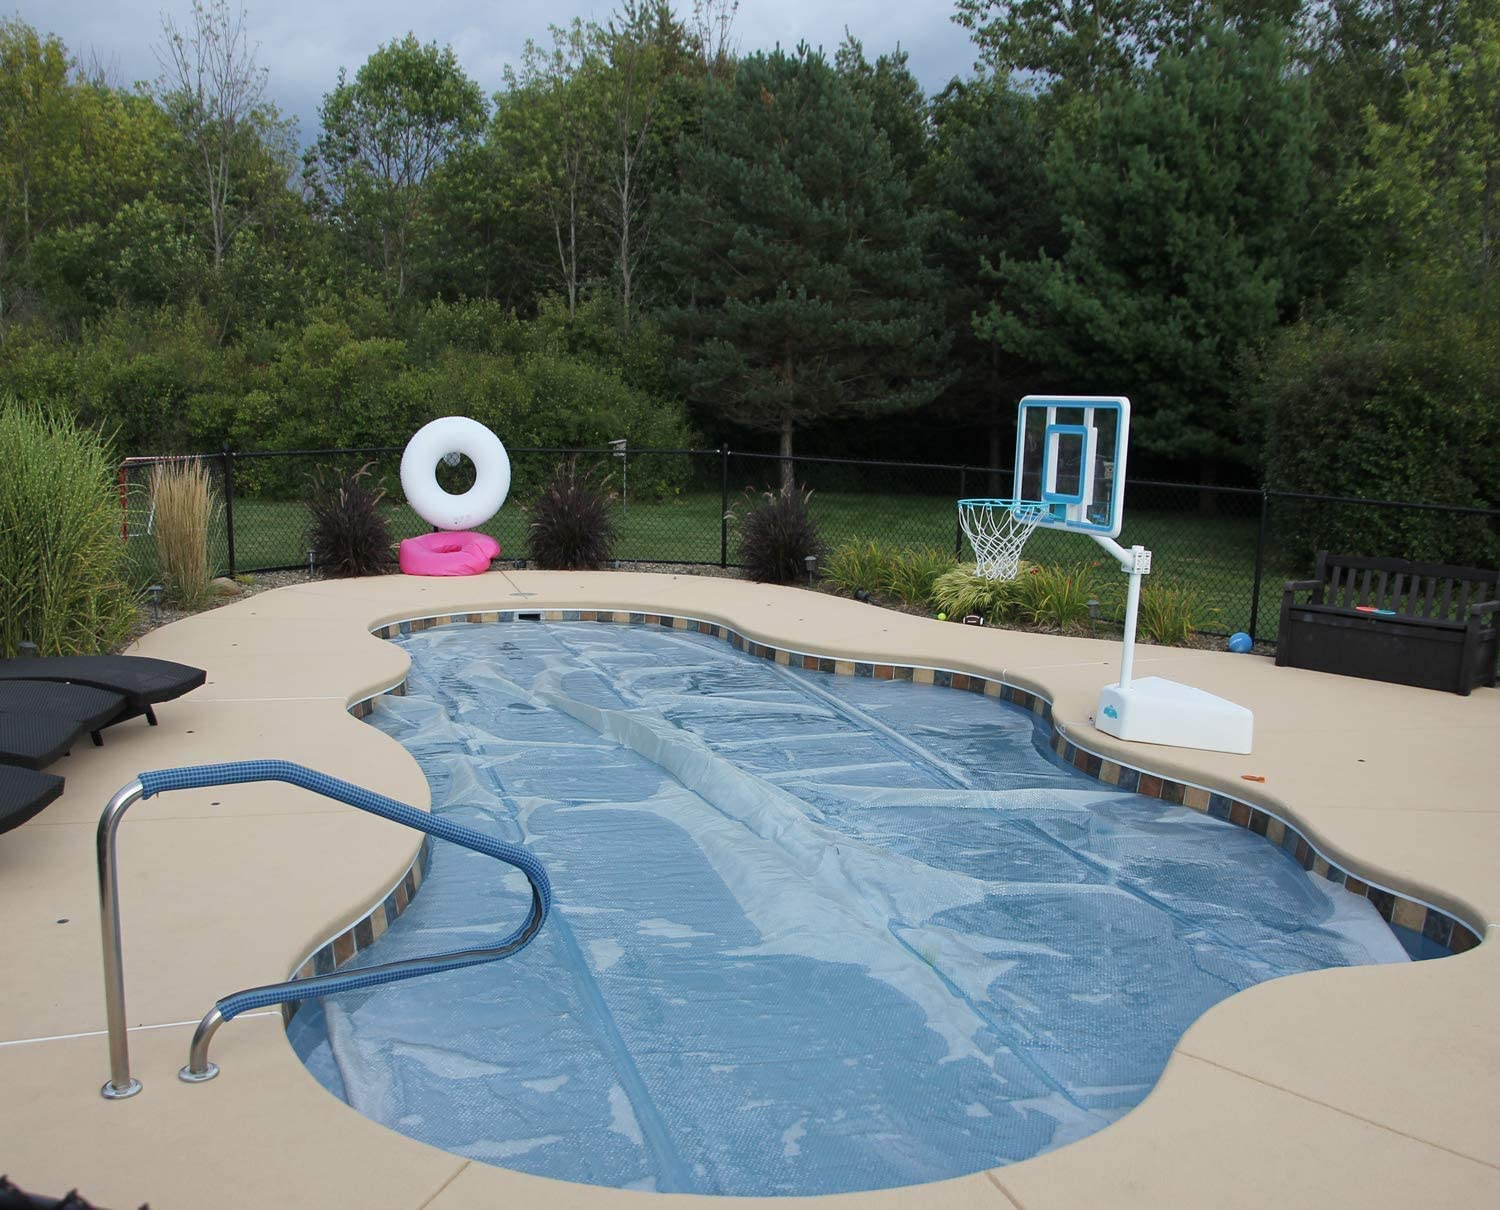 15Ft Pool Solar Blanket Protective Cover,Above-Ground Pool Mate Round Pool,8Ft Round Solar Pool Cover on The Swimming Pool and Prevent Water Evaporation,8Ft